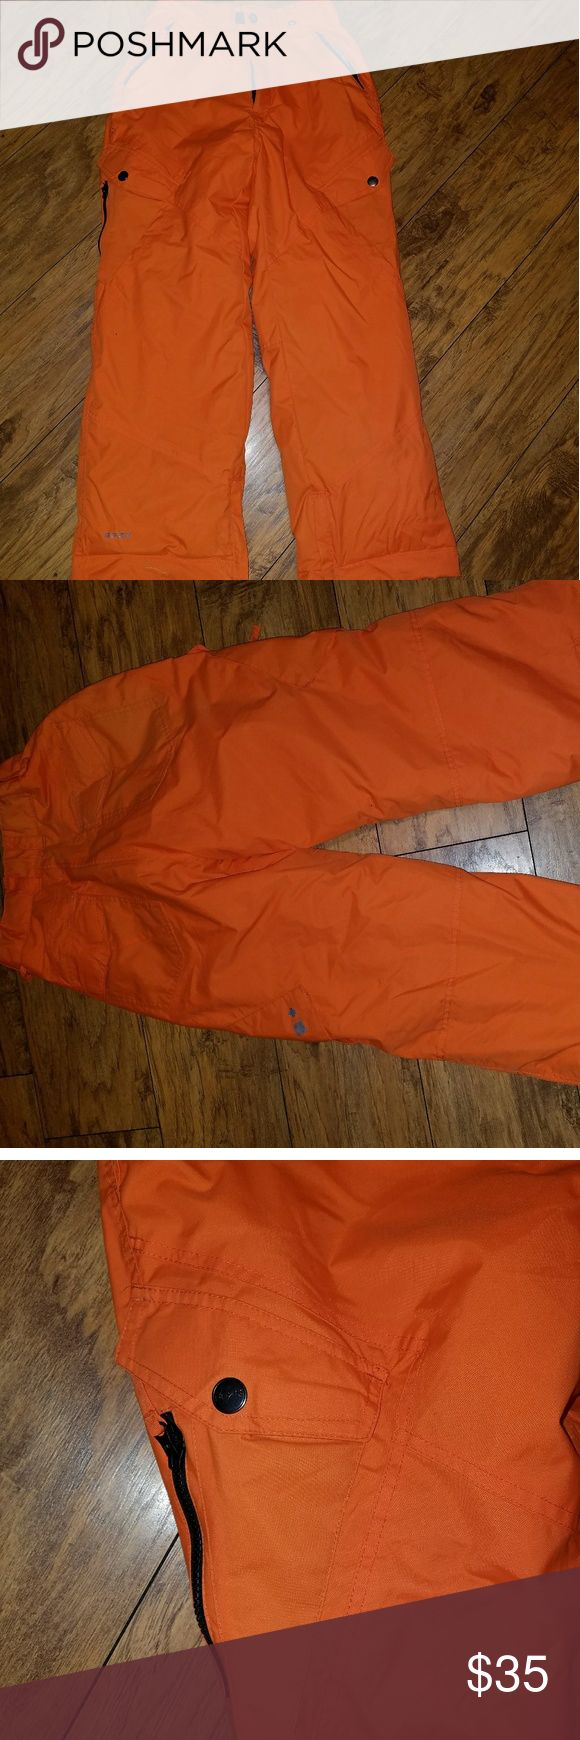 RPZN YOUTH SNOWBOARD PANTS No rips or stains in very good condition RPZN Other